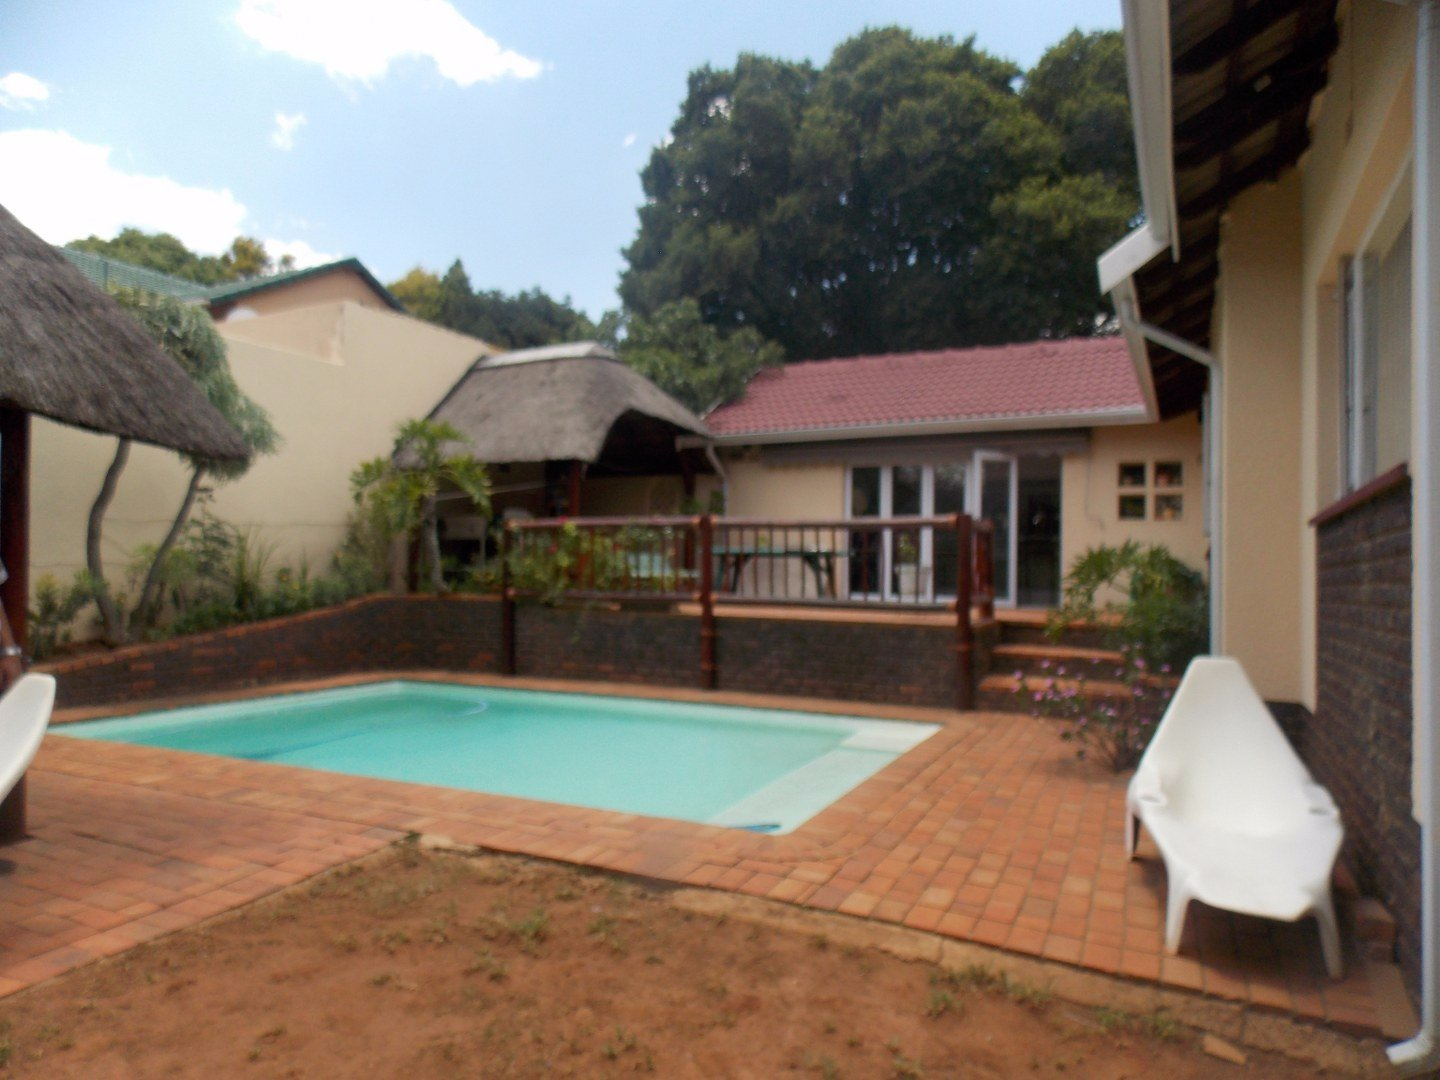 Johannesburg, Mulbarton Property  | Houses For Sale Mulbarton, Mulbarton, House 3 bedrooms property for sale Price:2,999,999